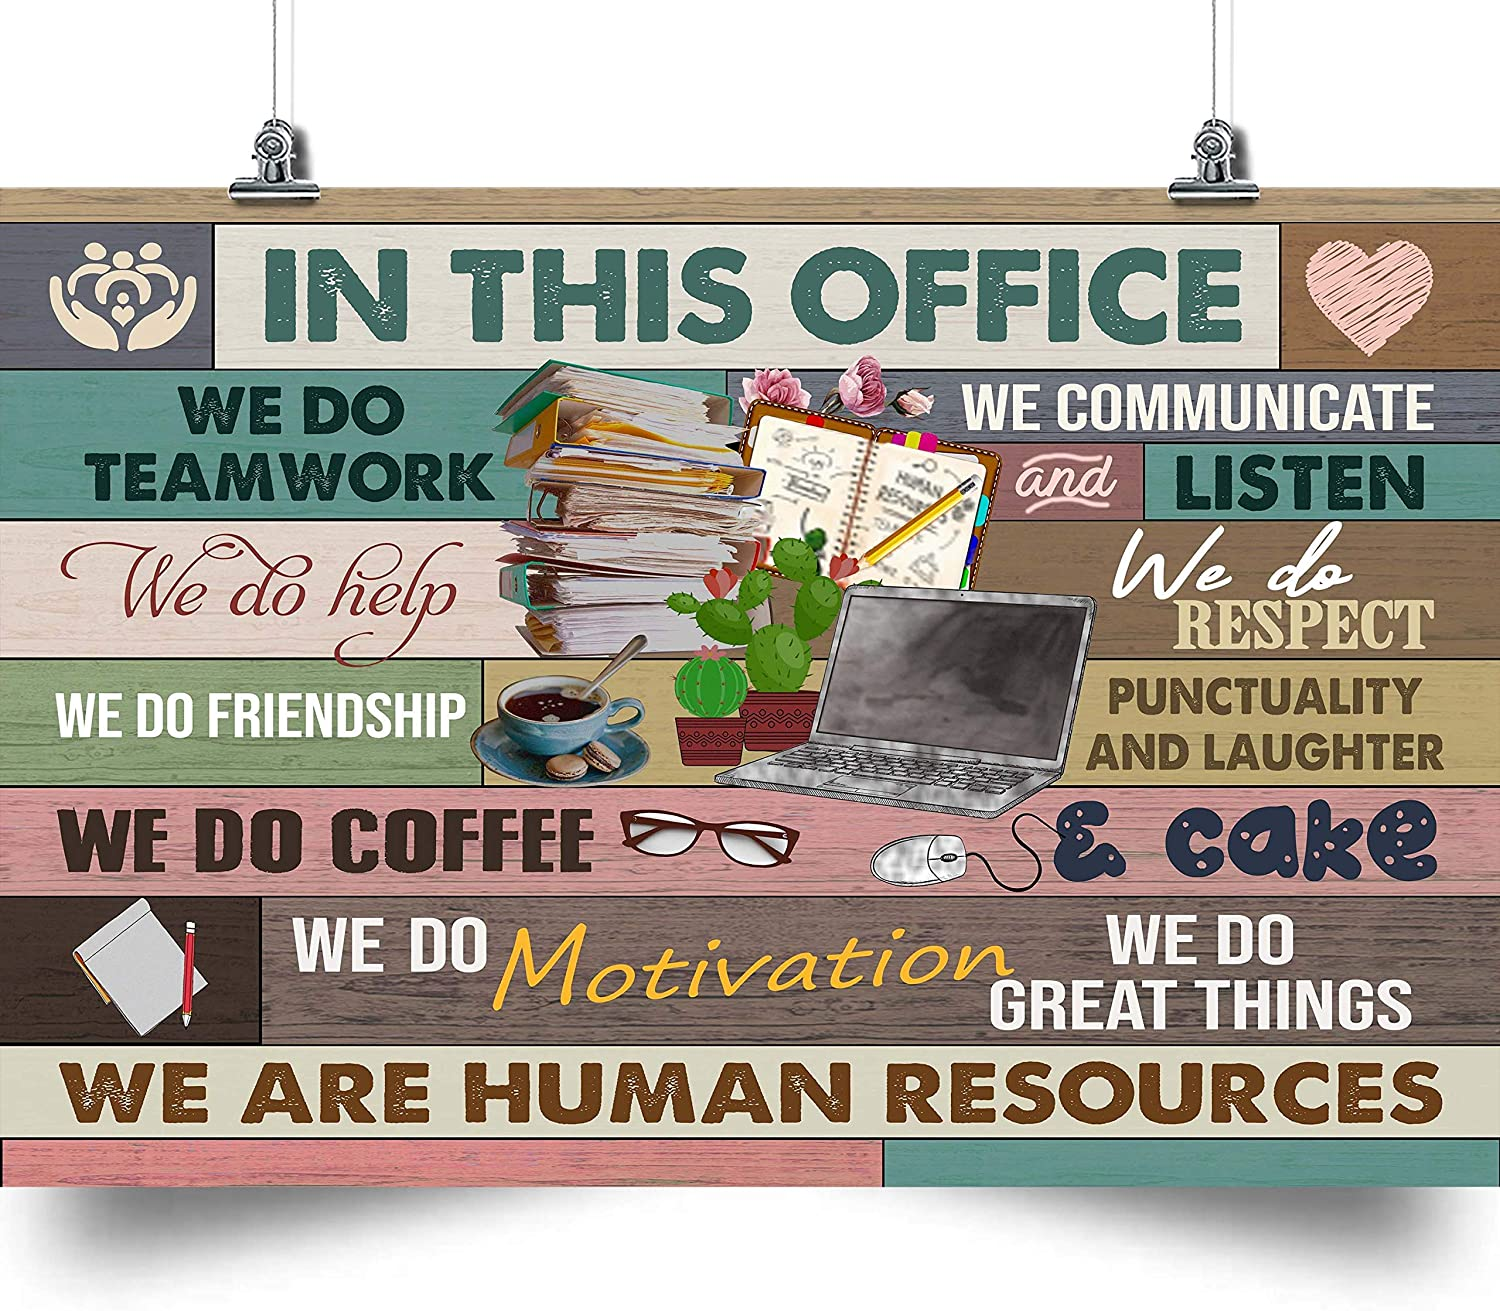 Bug Hunter in This Office we are Human Resources Poster Wall Art Home Decor Gifts for Lovers Painting (No Frame)